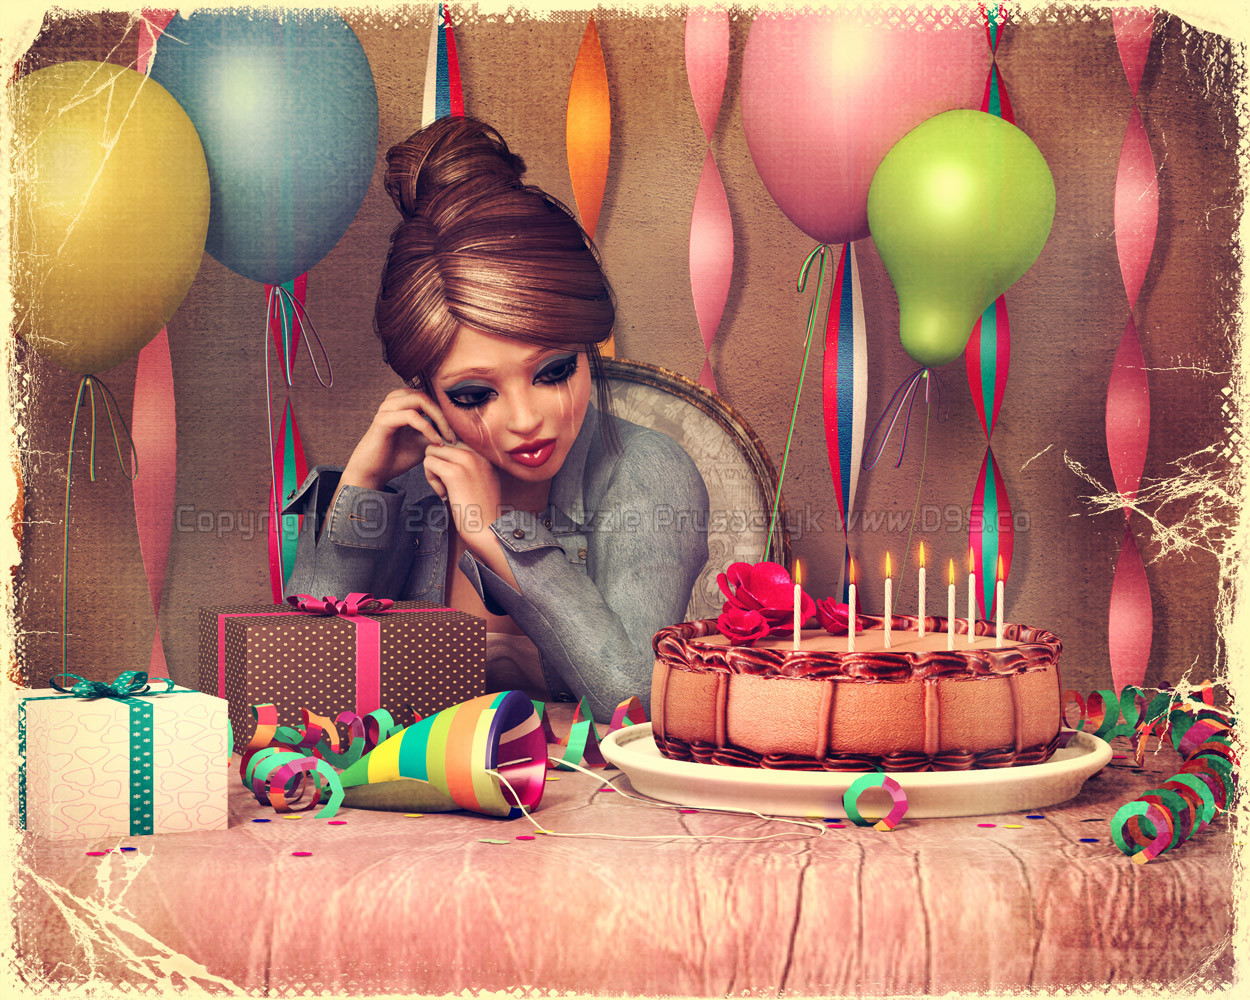 Yet another birthday comes and goes, nothing changes, nothing grows.